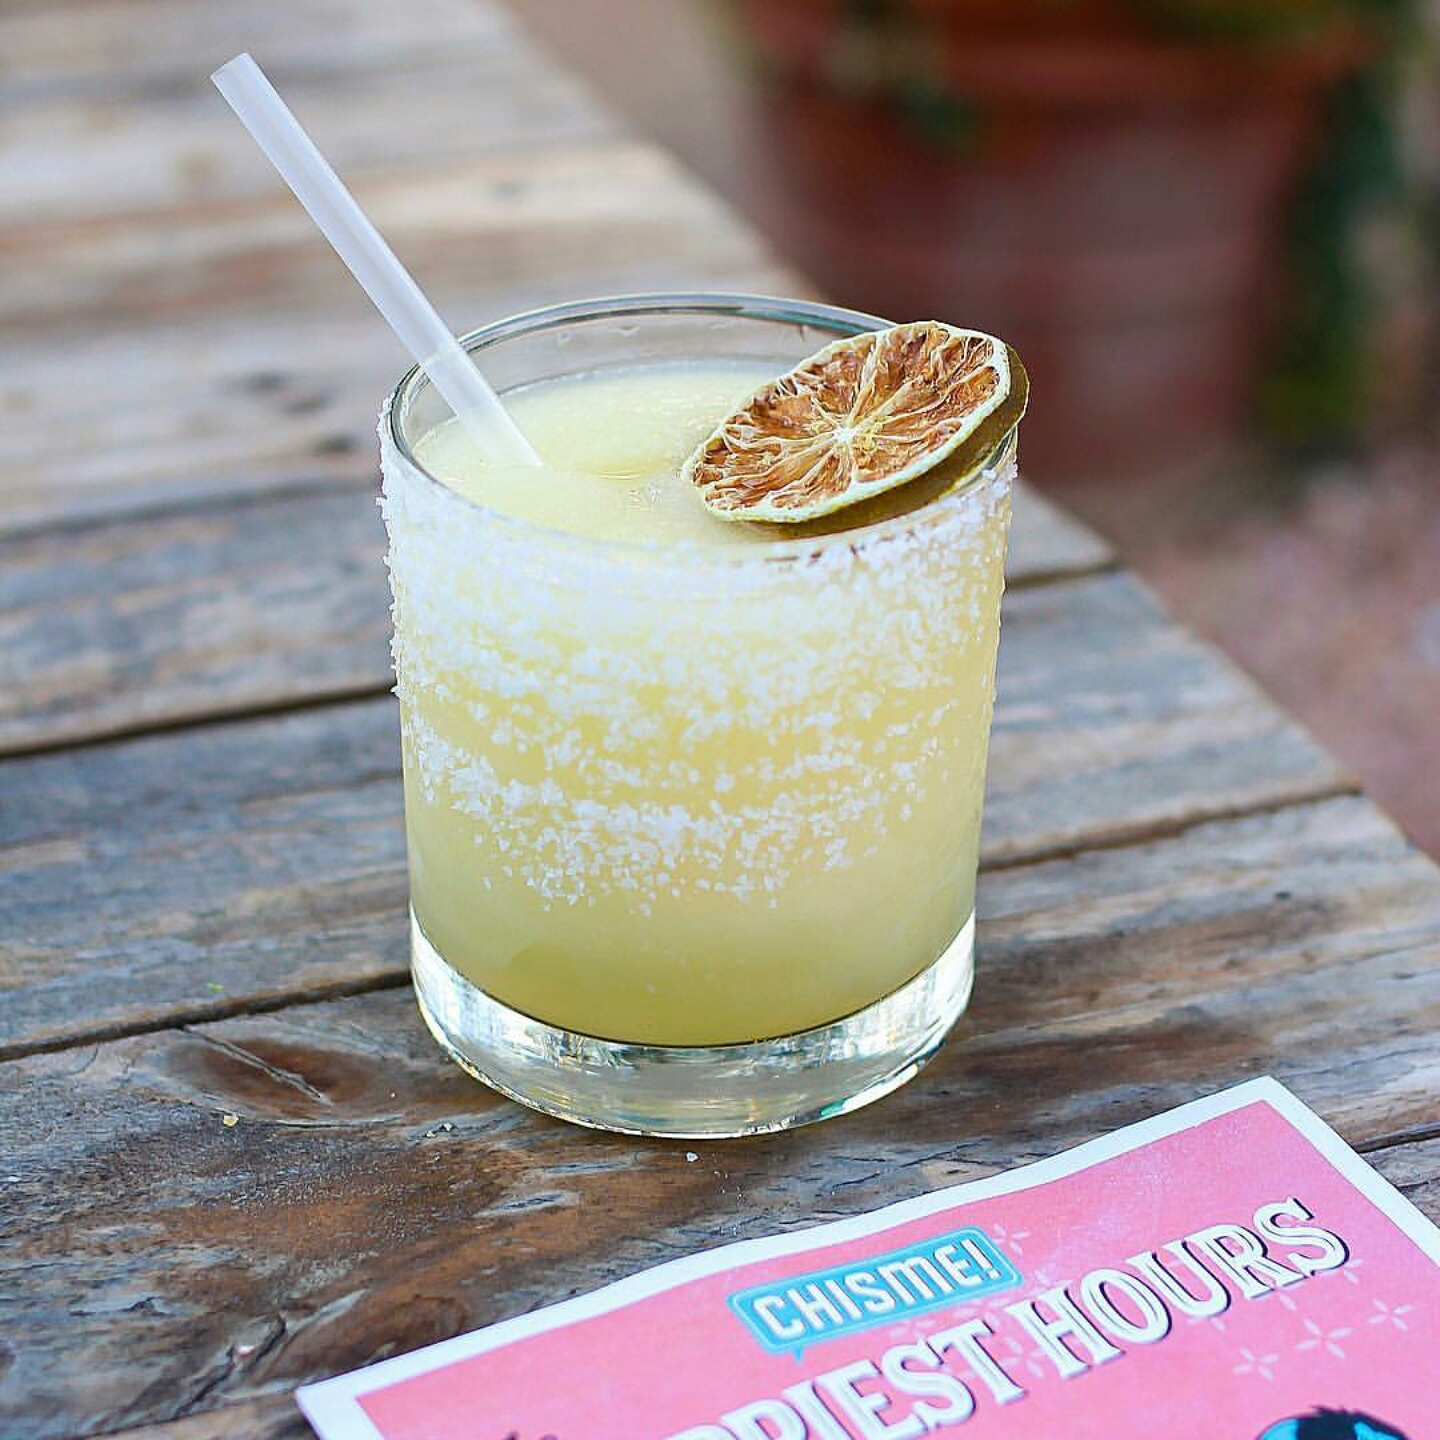 House Margarita made with FRESH lime juice and House Citrus Cordial.